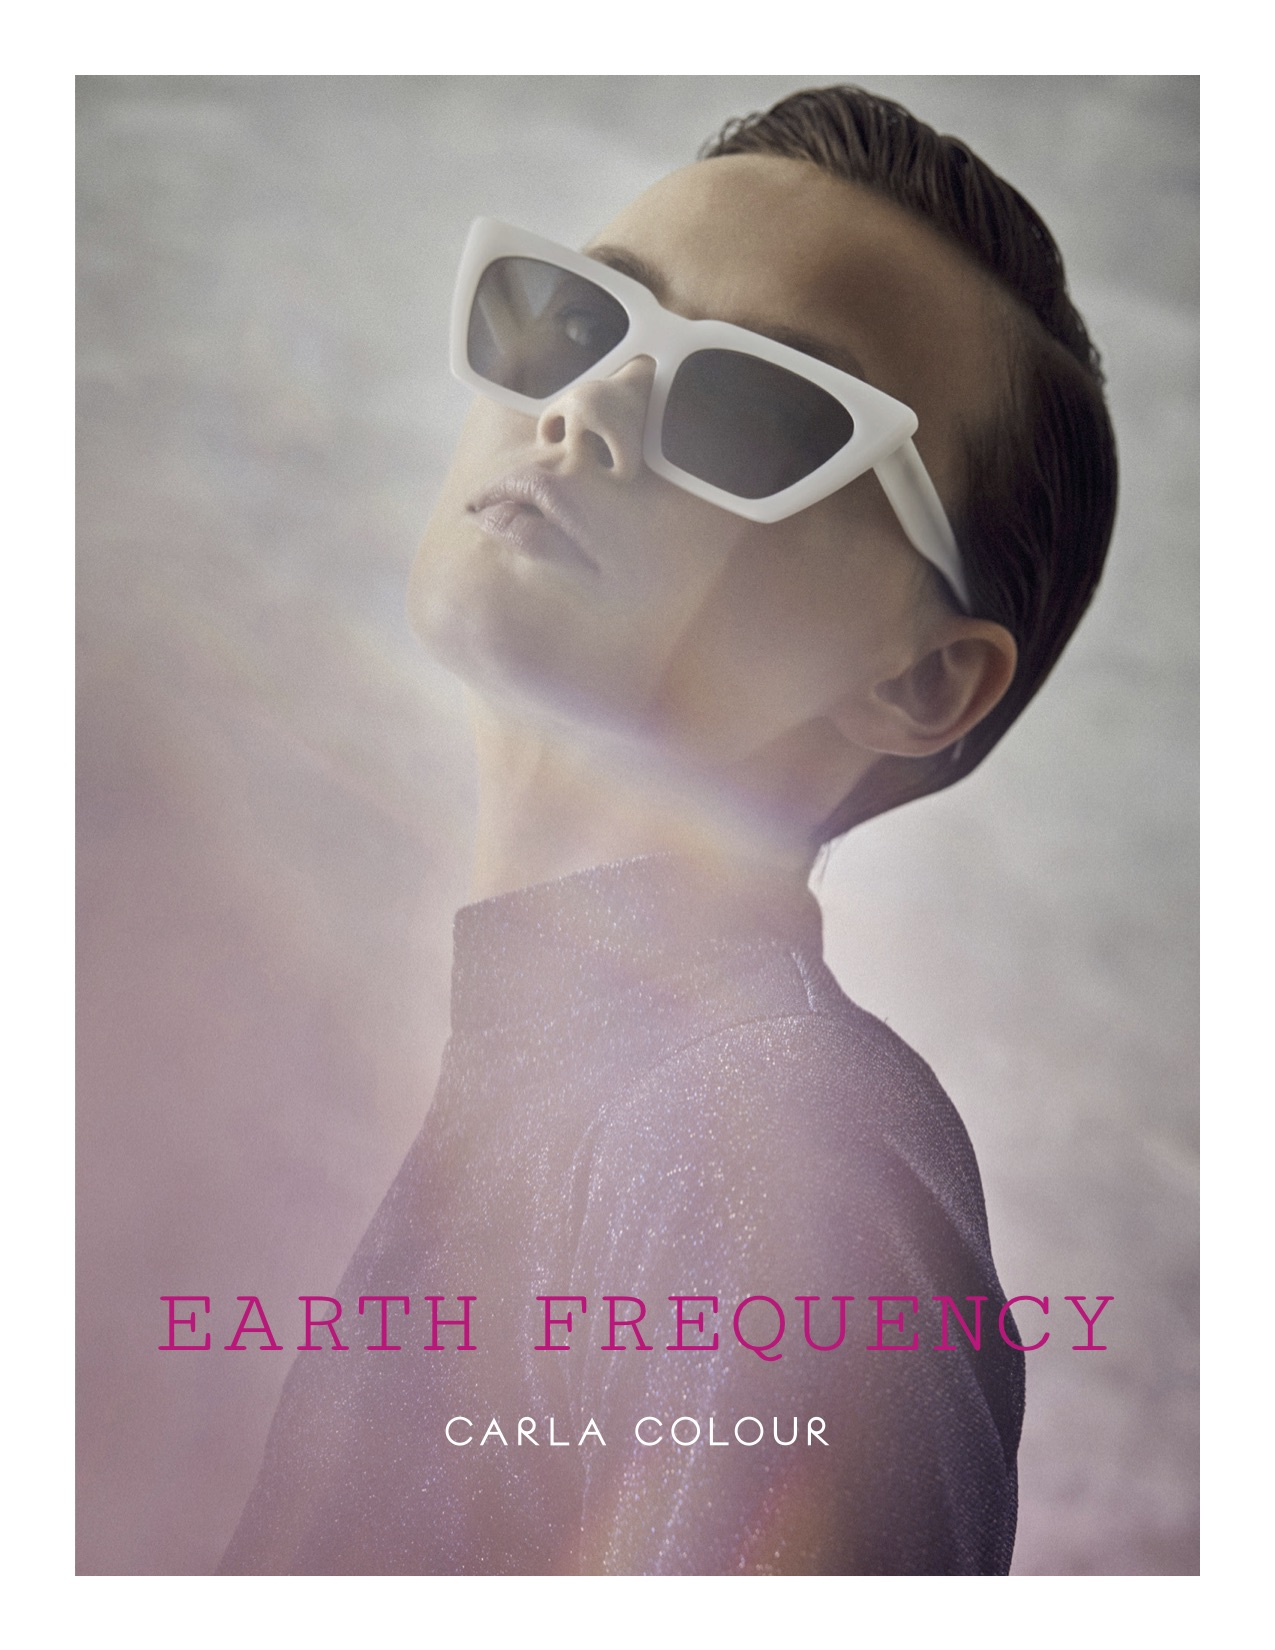 EARTHFREQUENCY-1.jpg